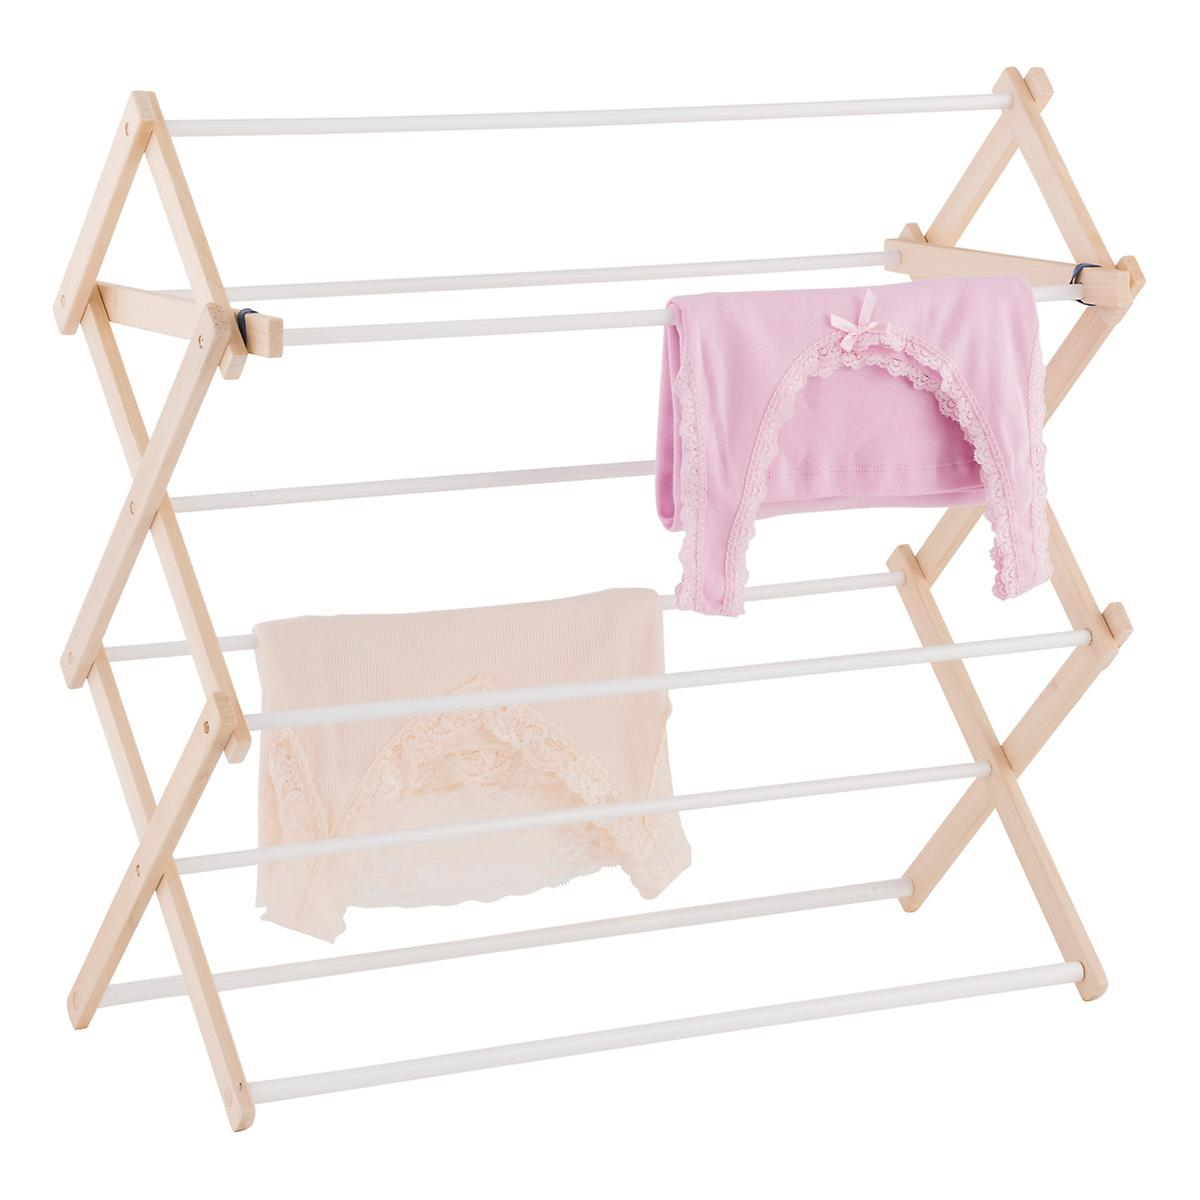 9-Dowel Wooden Wall-Mounted & Floor Clothes Drying Rack ...